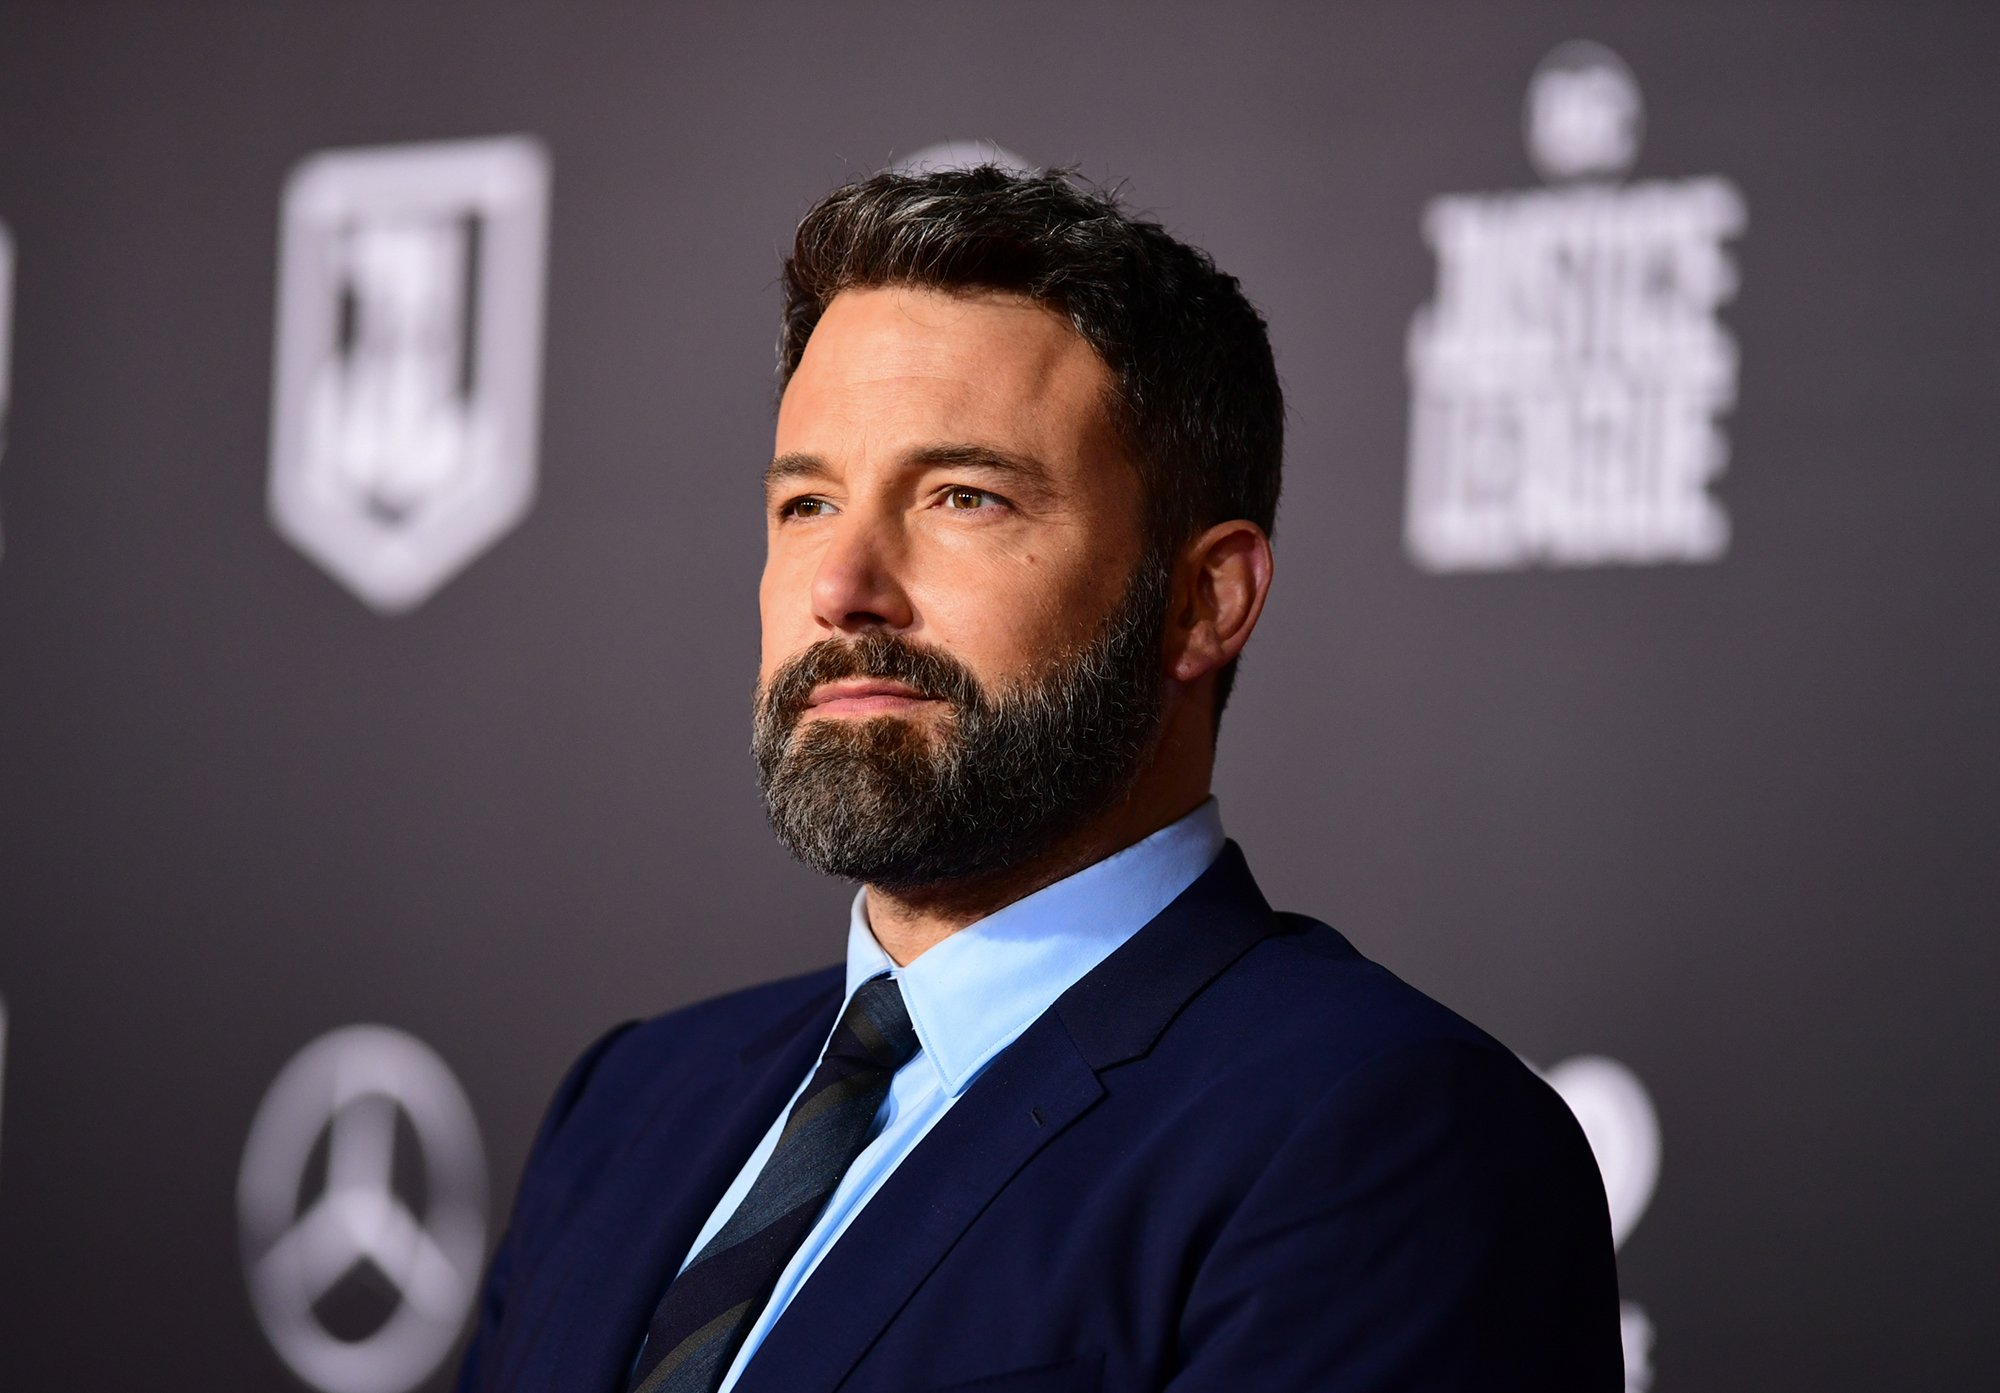 Ben Affleck Sends Funny Video To TikTok Star After Unmatching